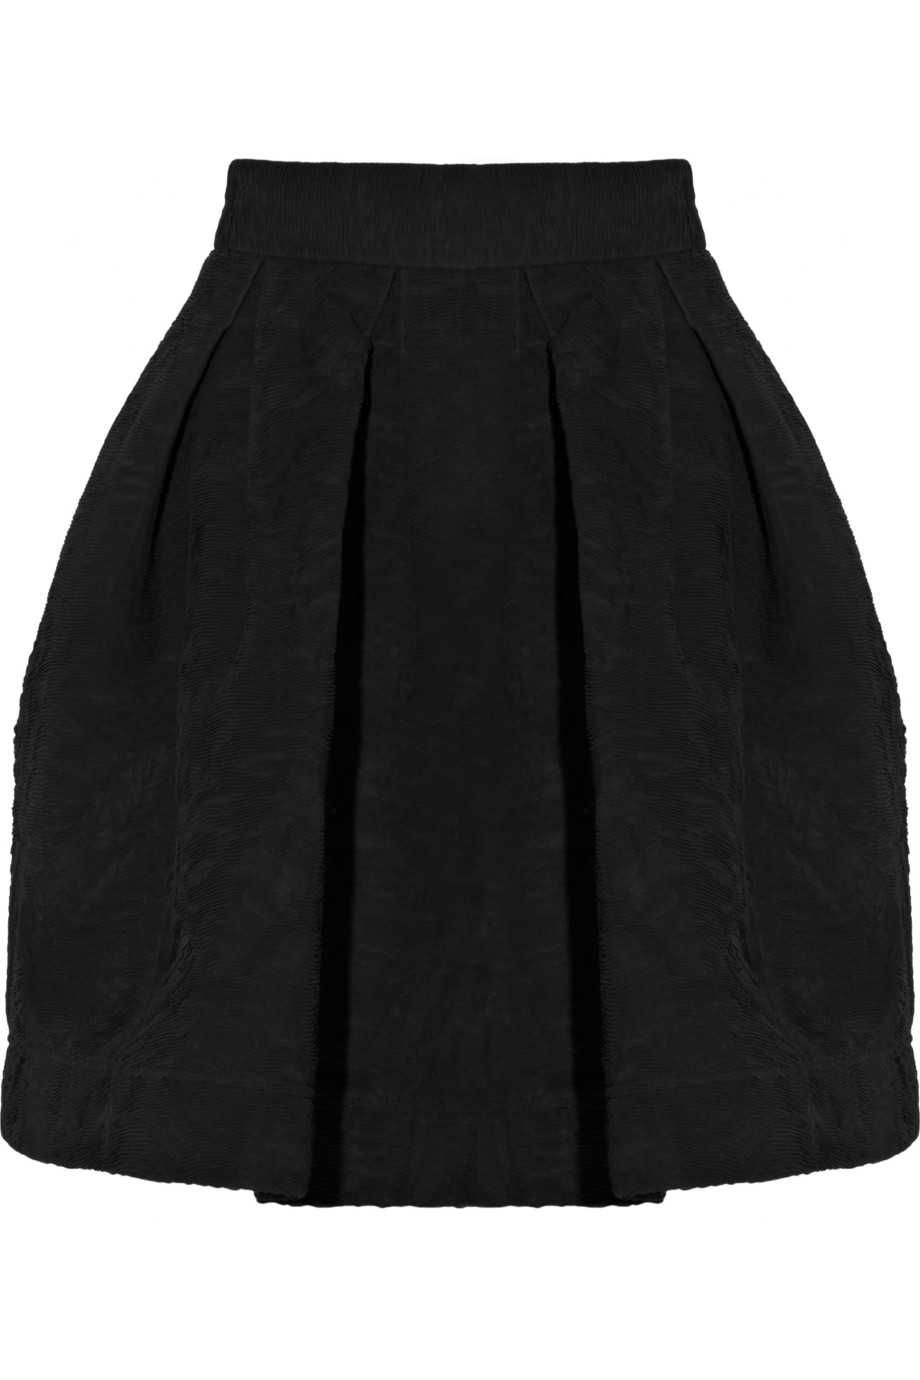 Aline Black Skirt